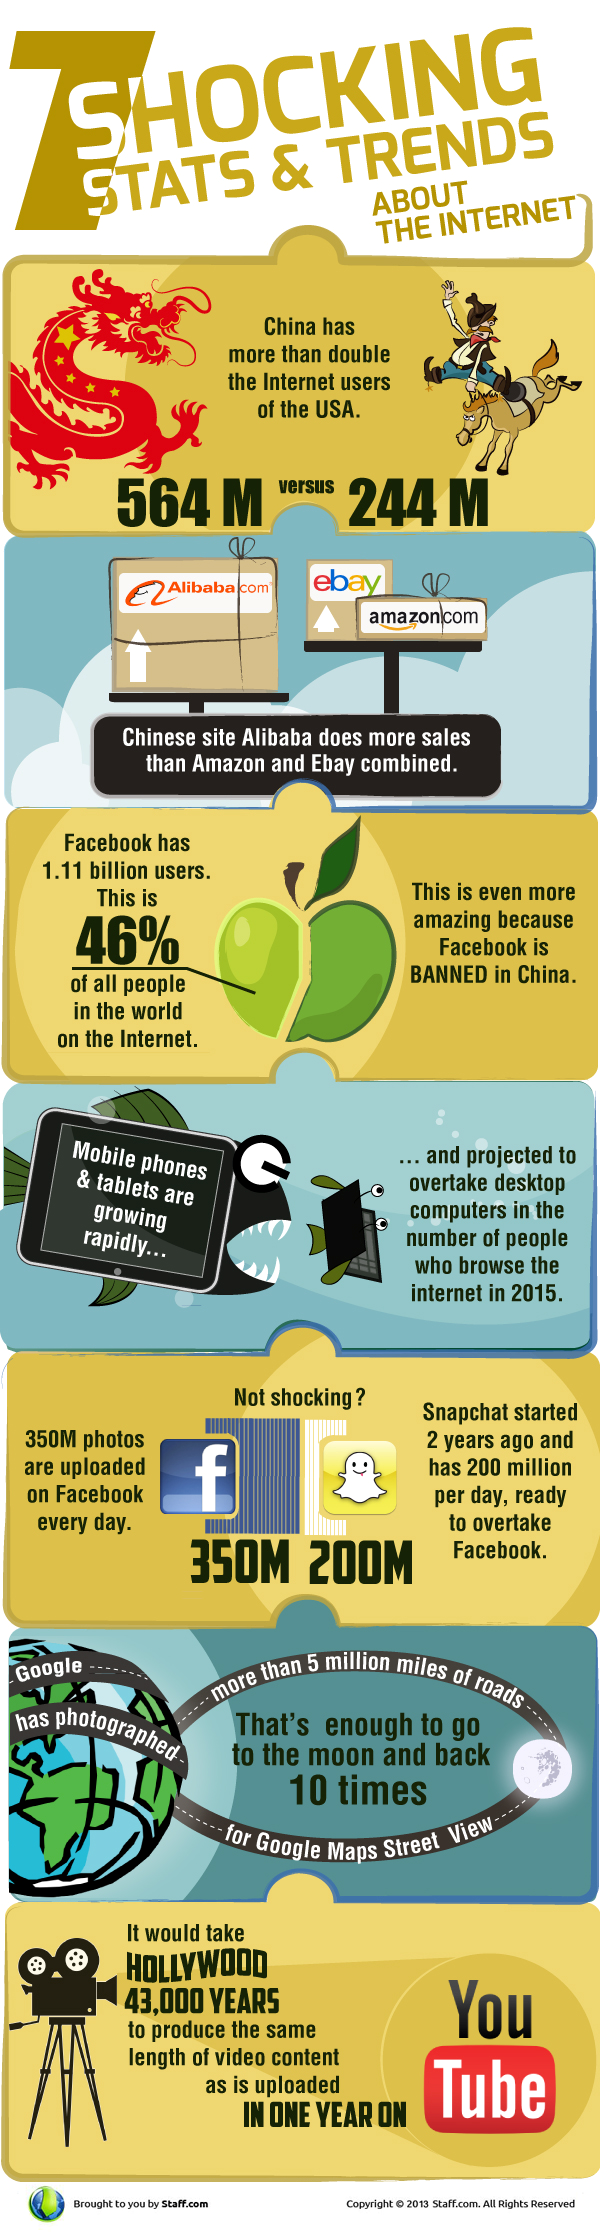 7 Shocking Stats and Trends about the Internet World by Technotipz